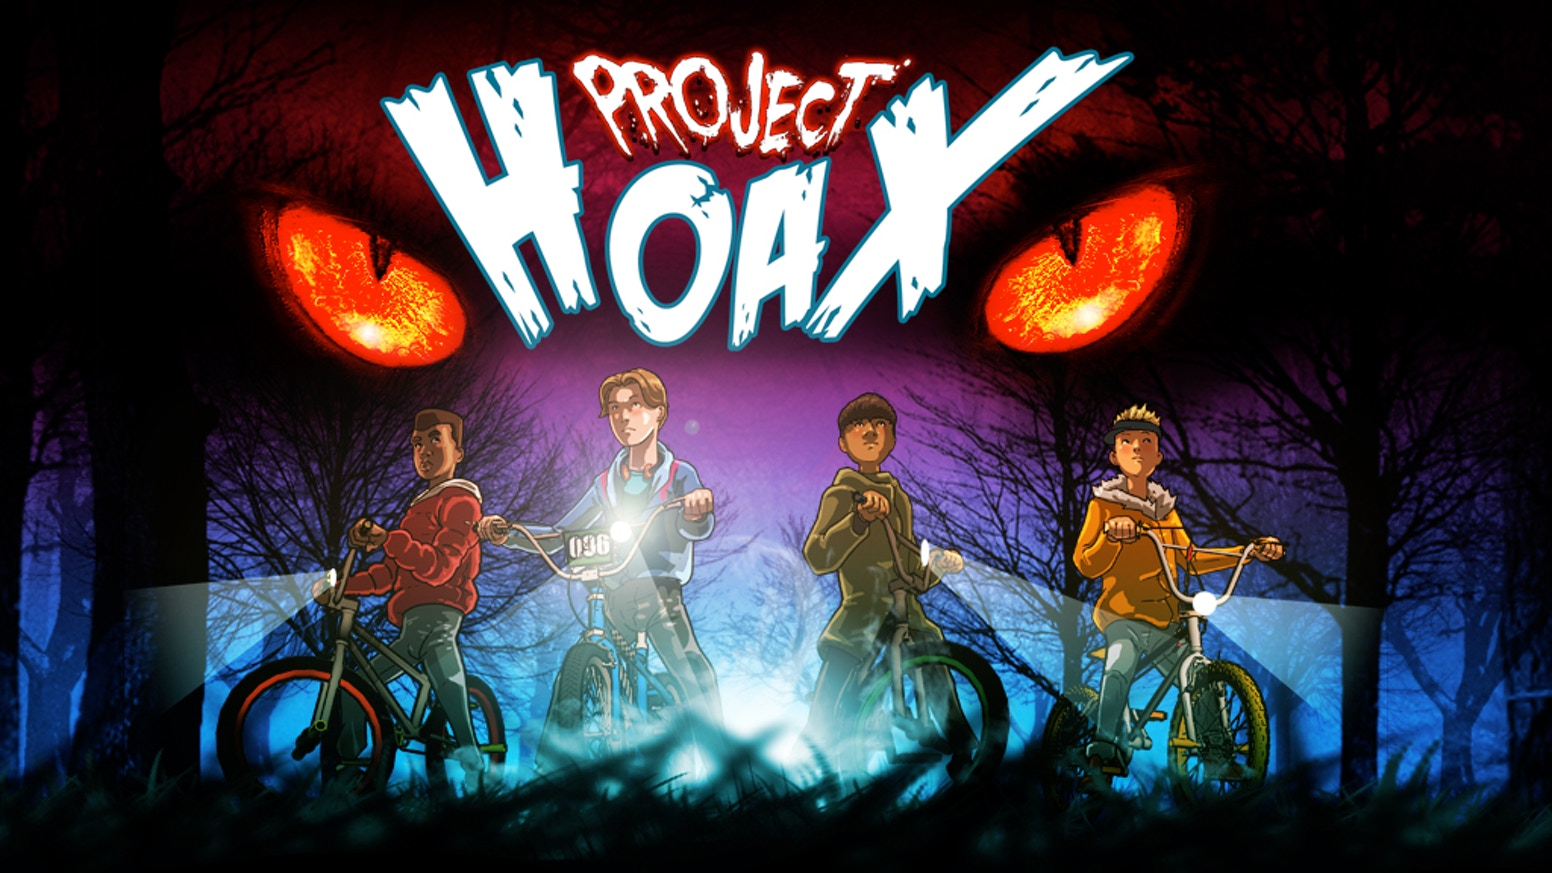 In 1994, a group of school kids stage a monster hoax to get their own back on the local bully, but get more than they bargained for.